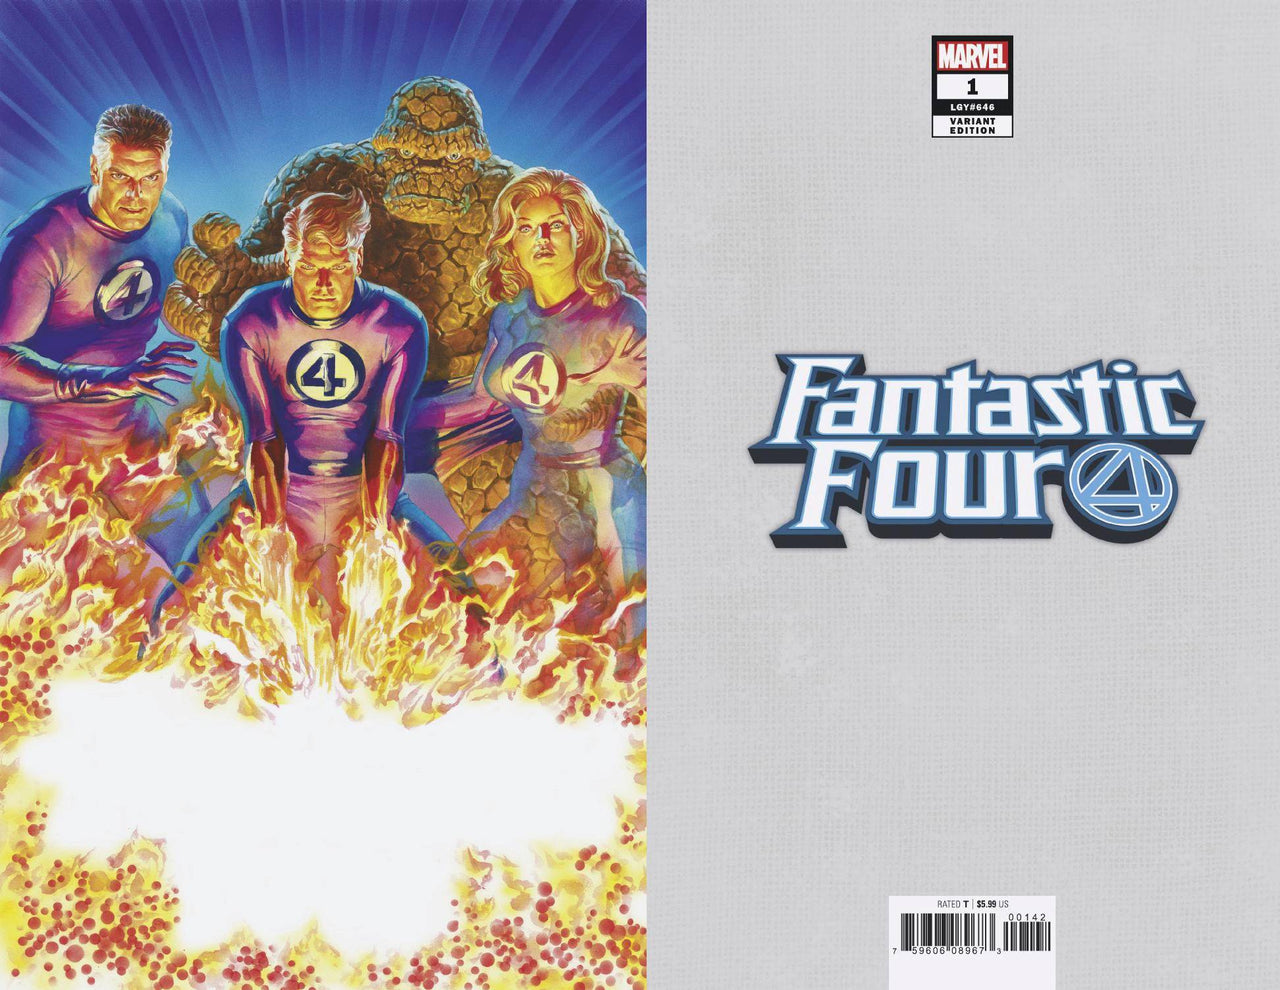 Fantastic Four 1:200 Variant issue #1 Alex Ross